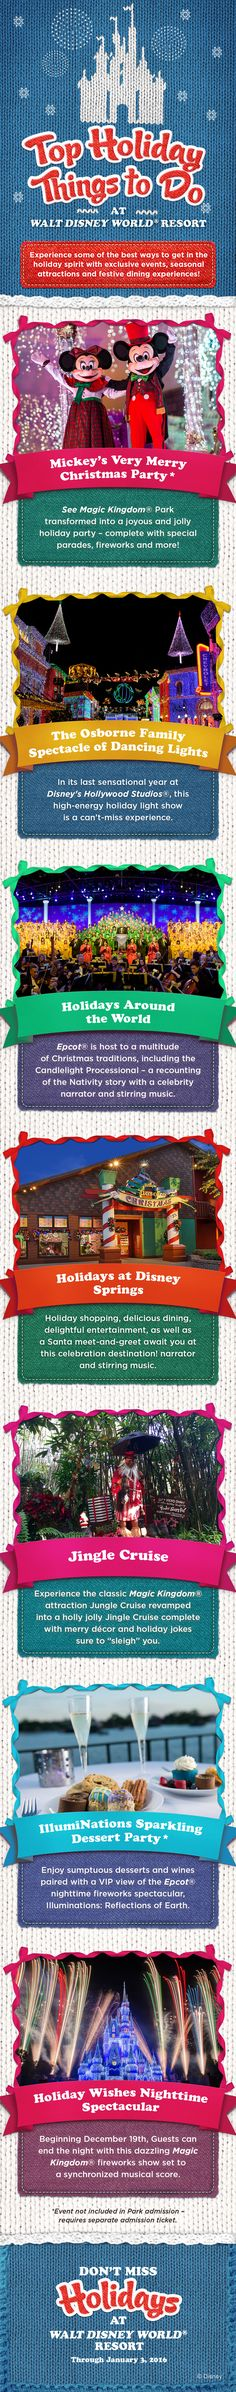 All through Walt Disney World Resort, you'll find special holiday events, entertainment and attractions including Mickey's Very Merry Christmas Party and the Osborne Spectacle of Dancing Lights!